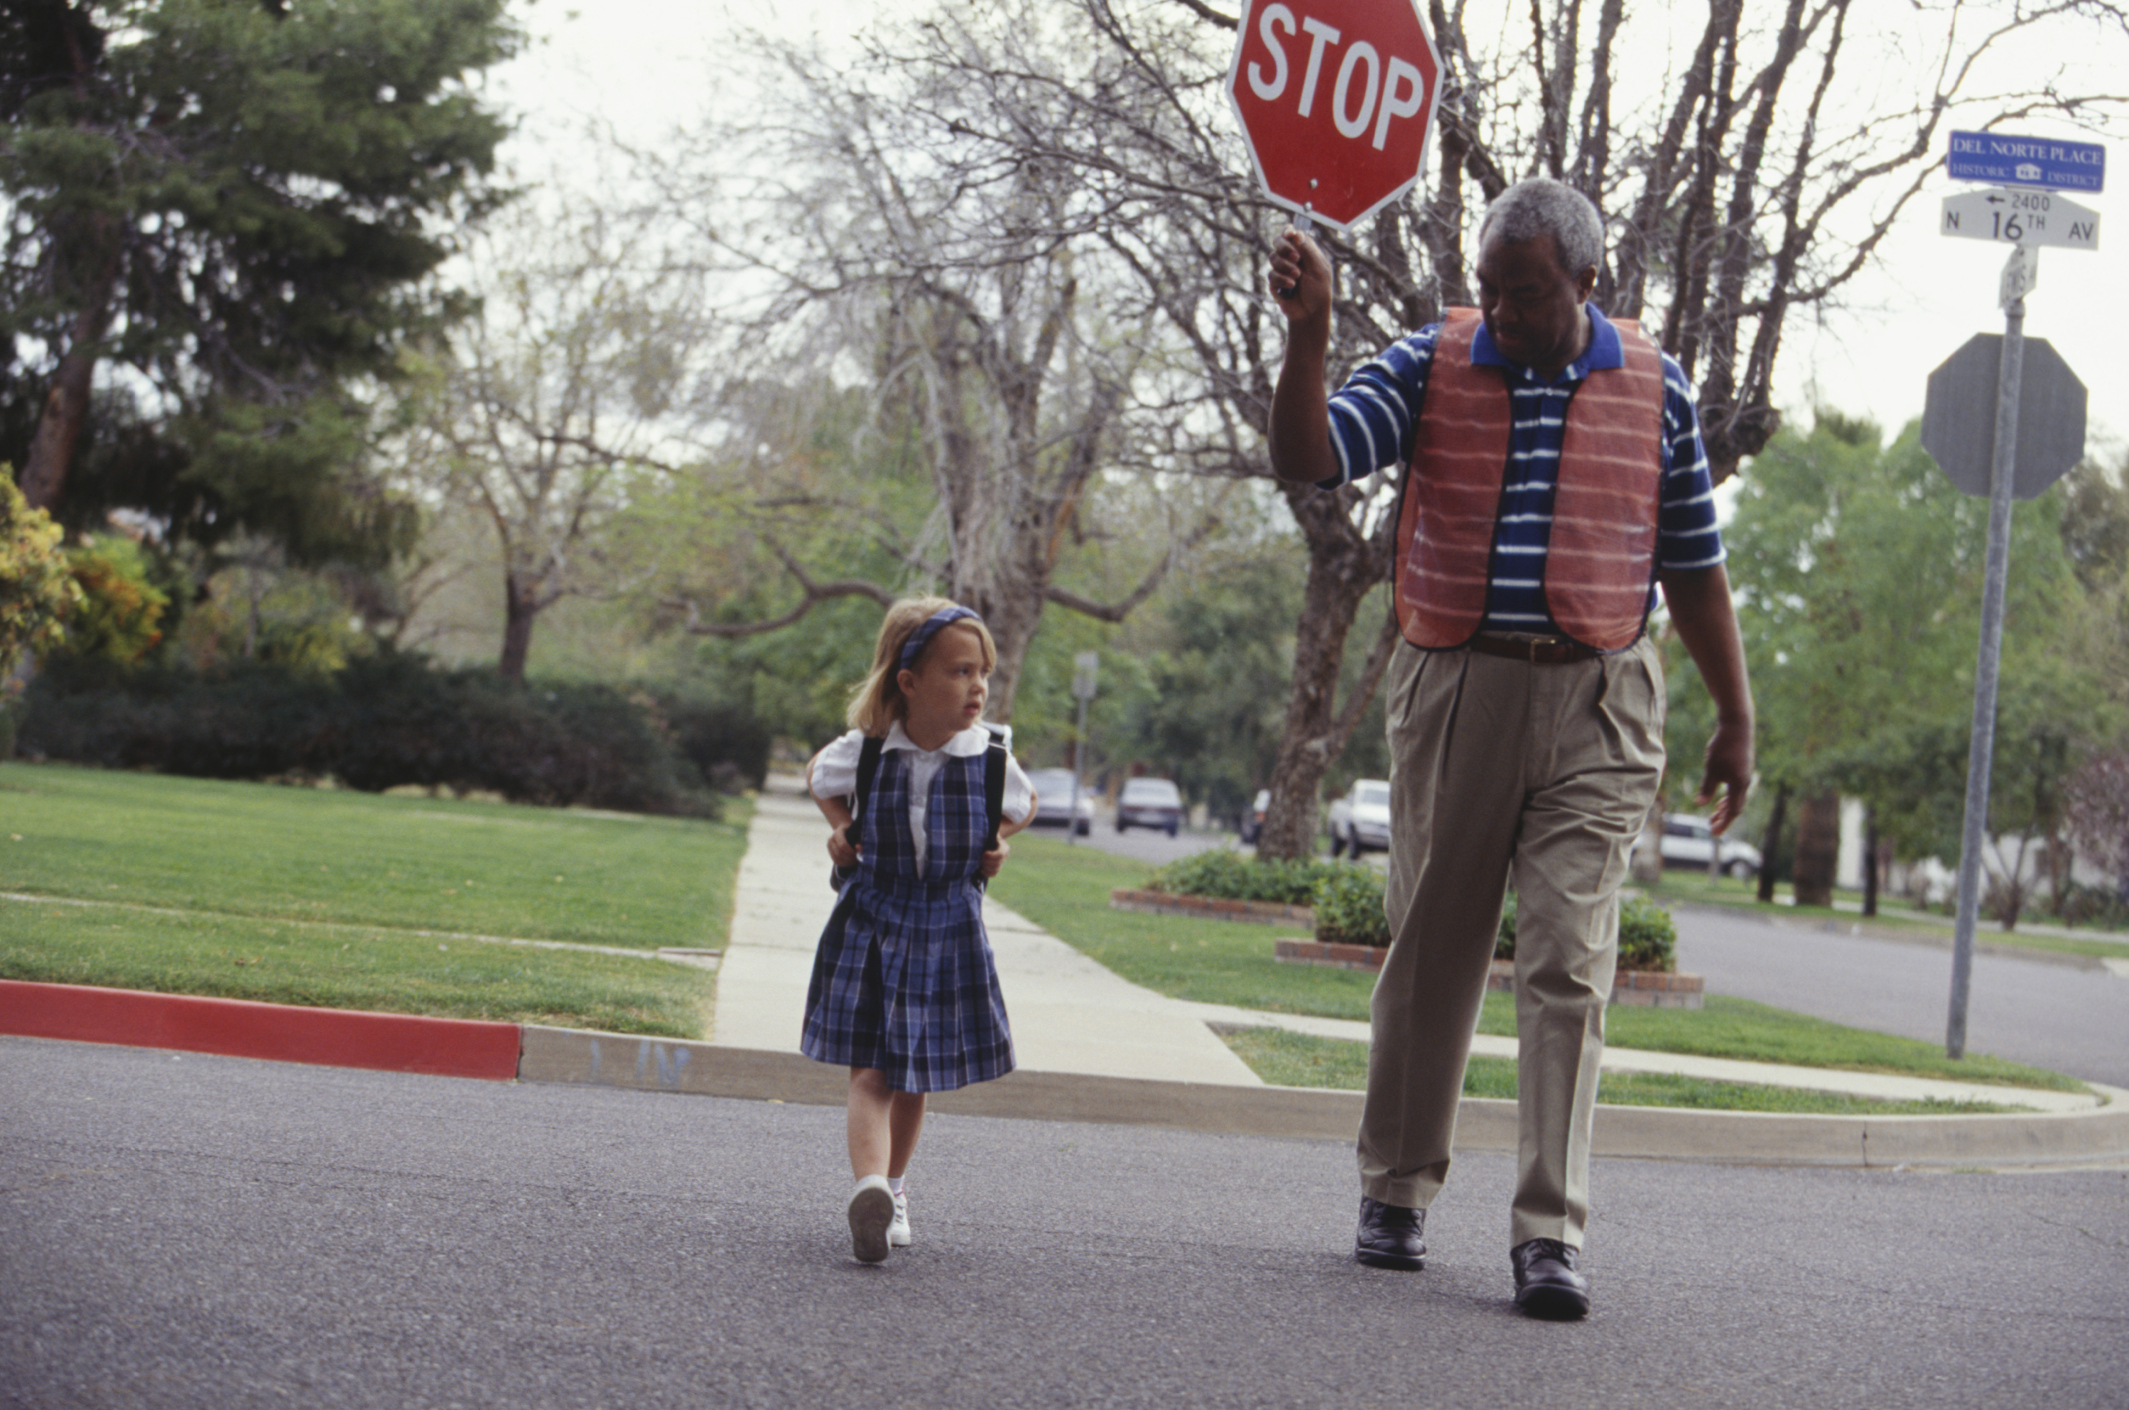 How To Teach Children Road Safety Rules